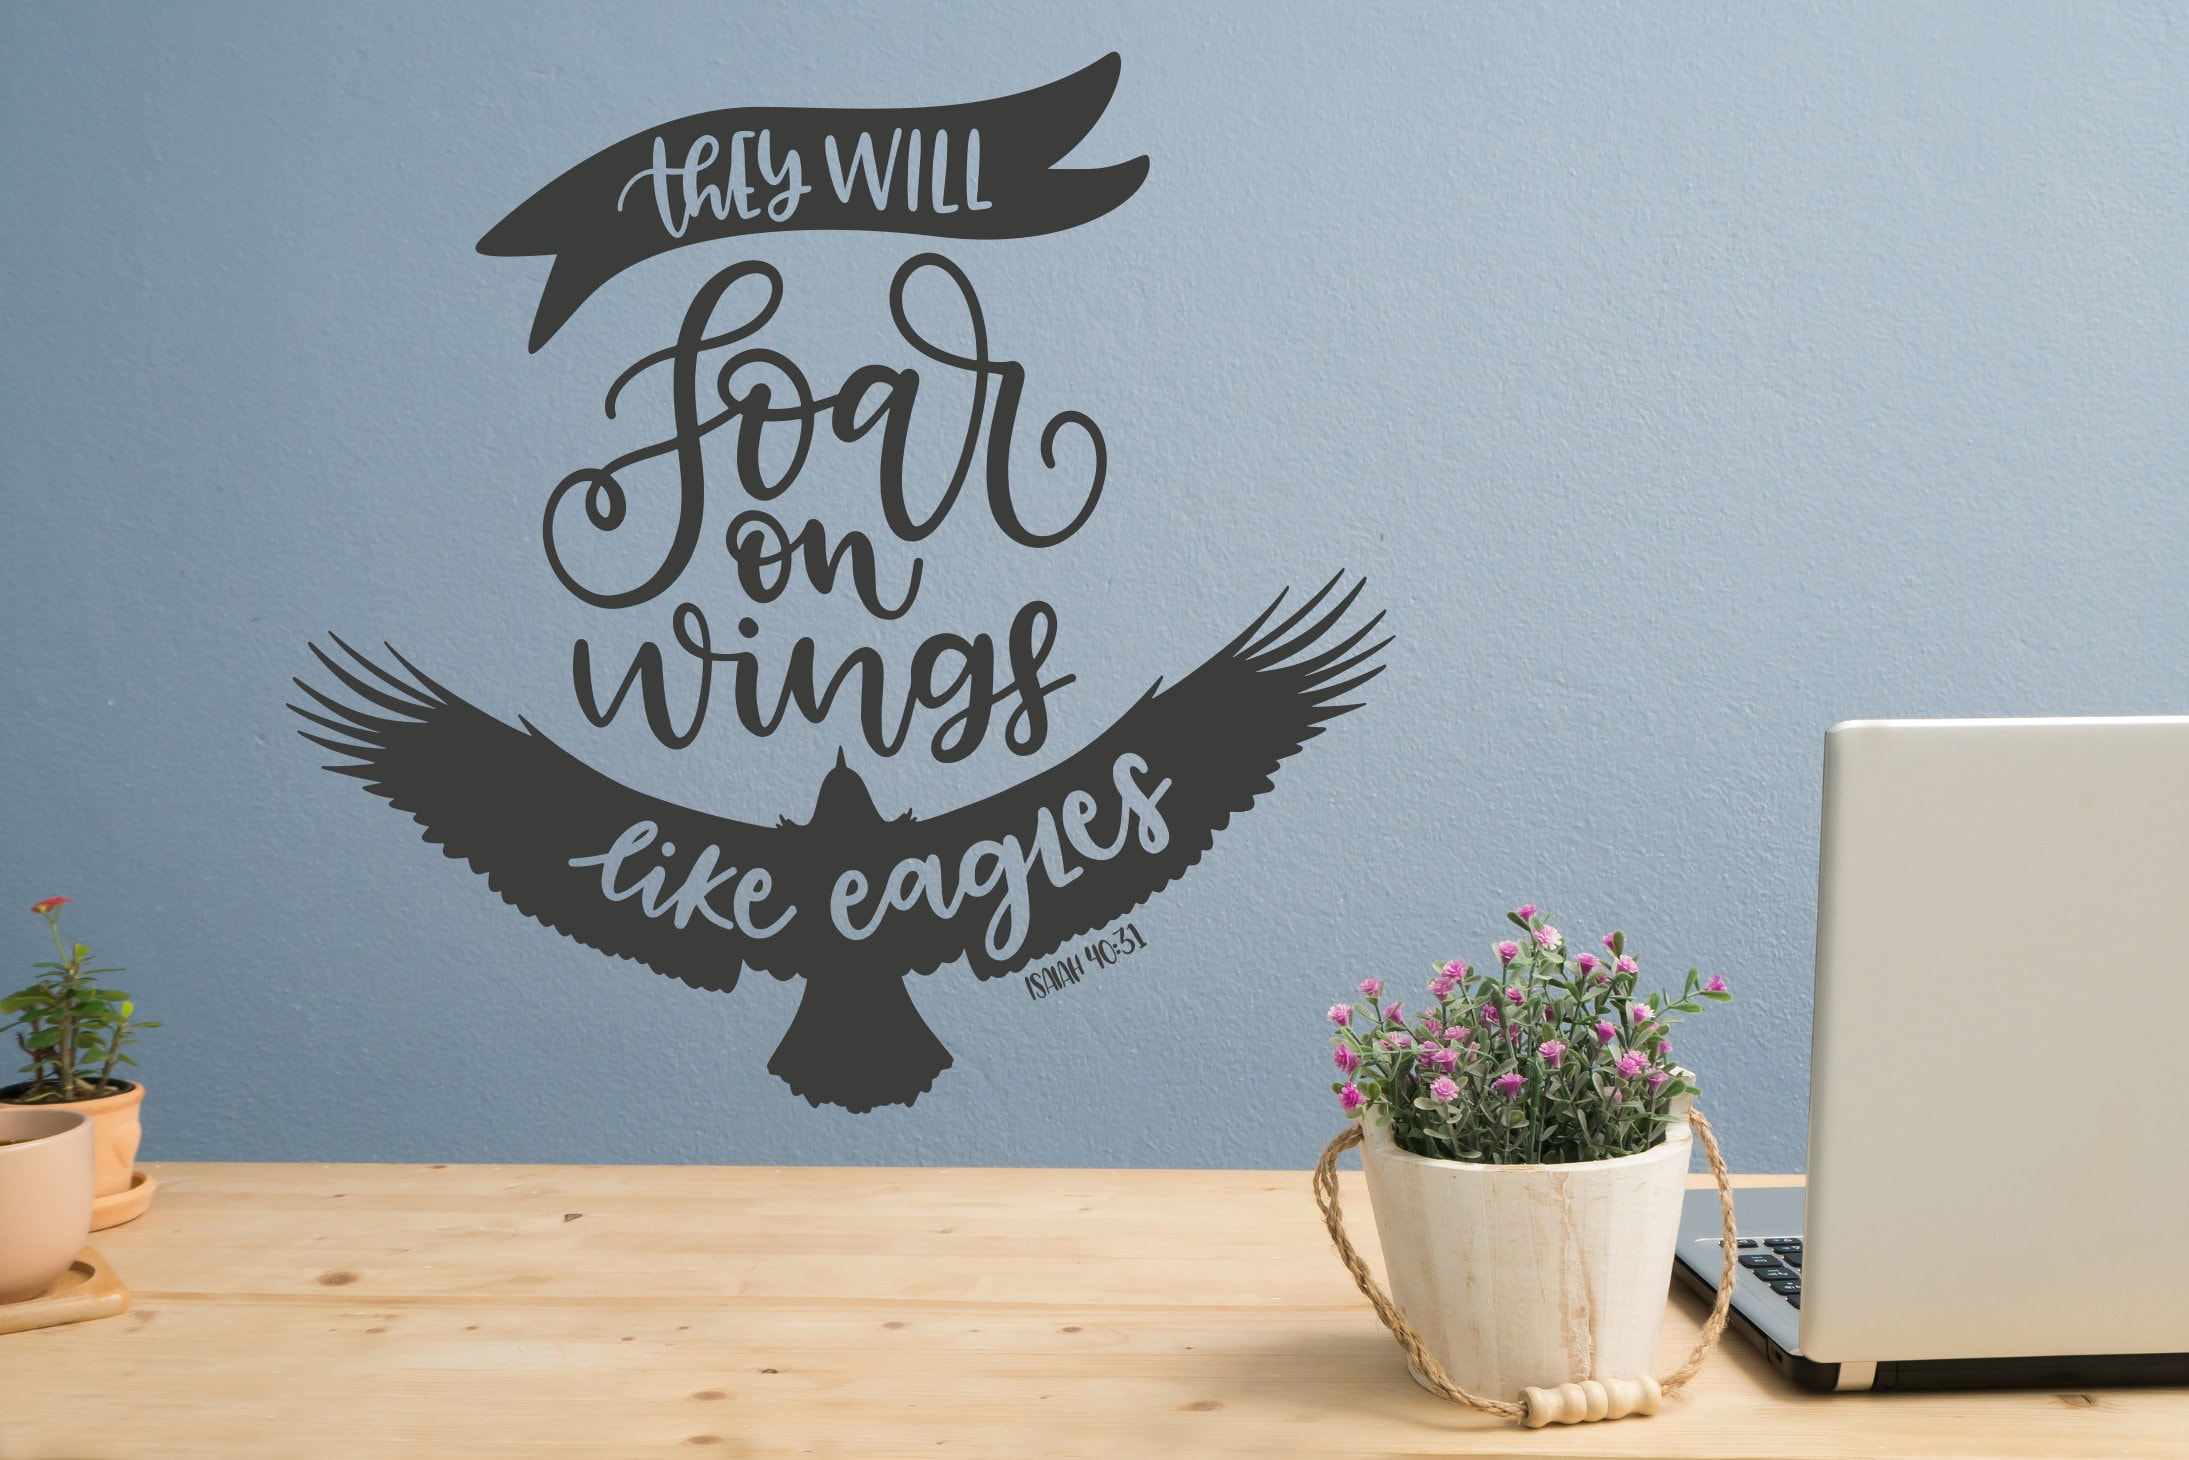 Christian wall art, They will soar on wings like eagles, Isaiah